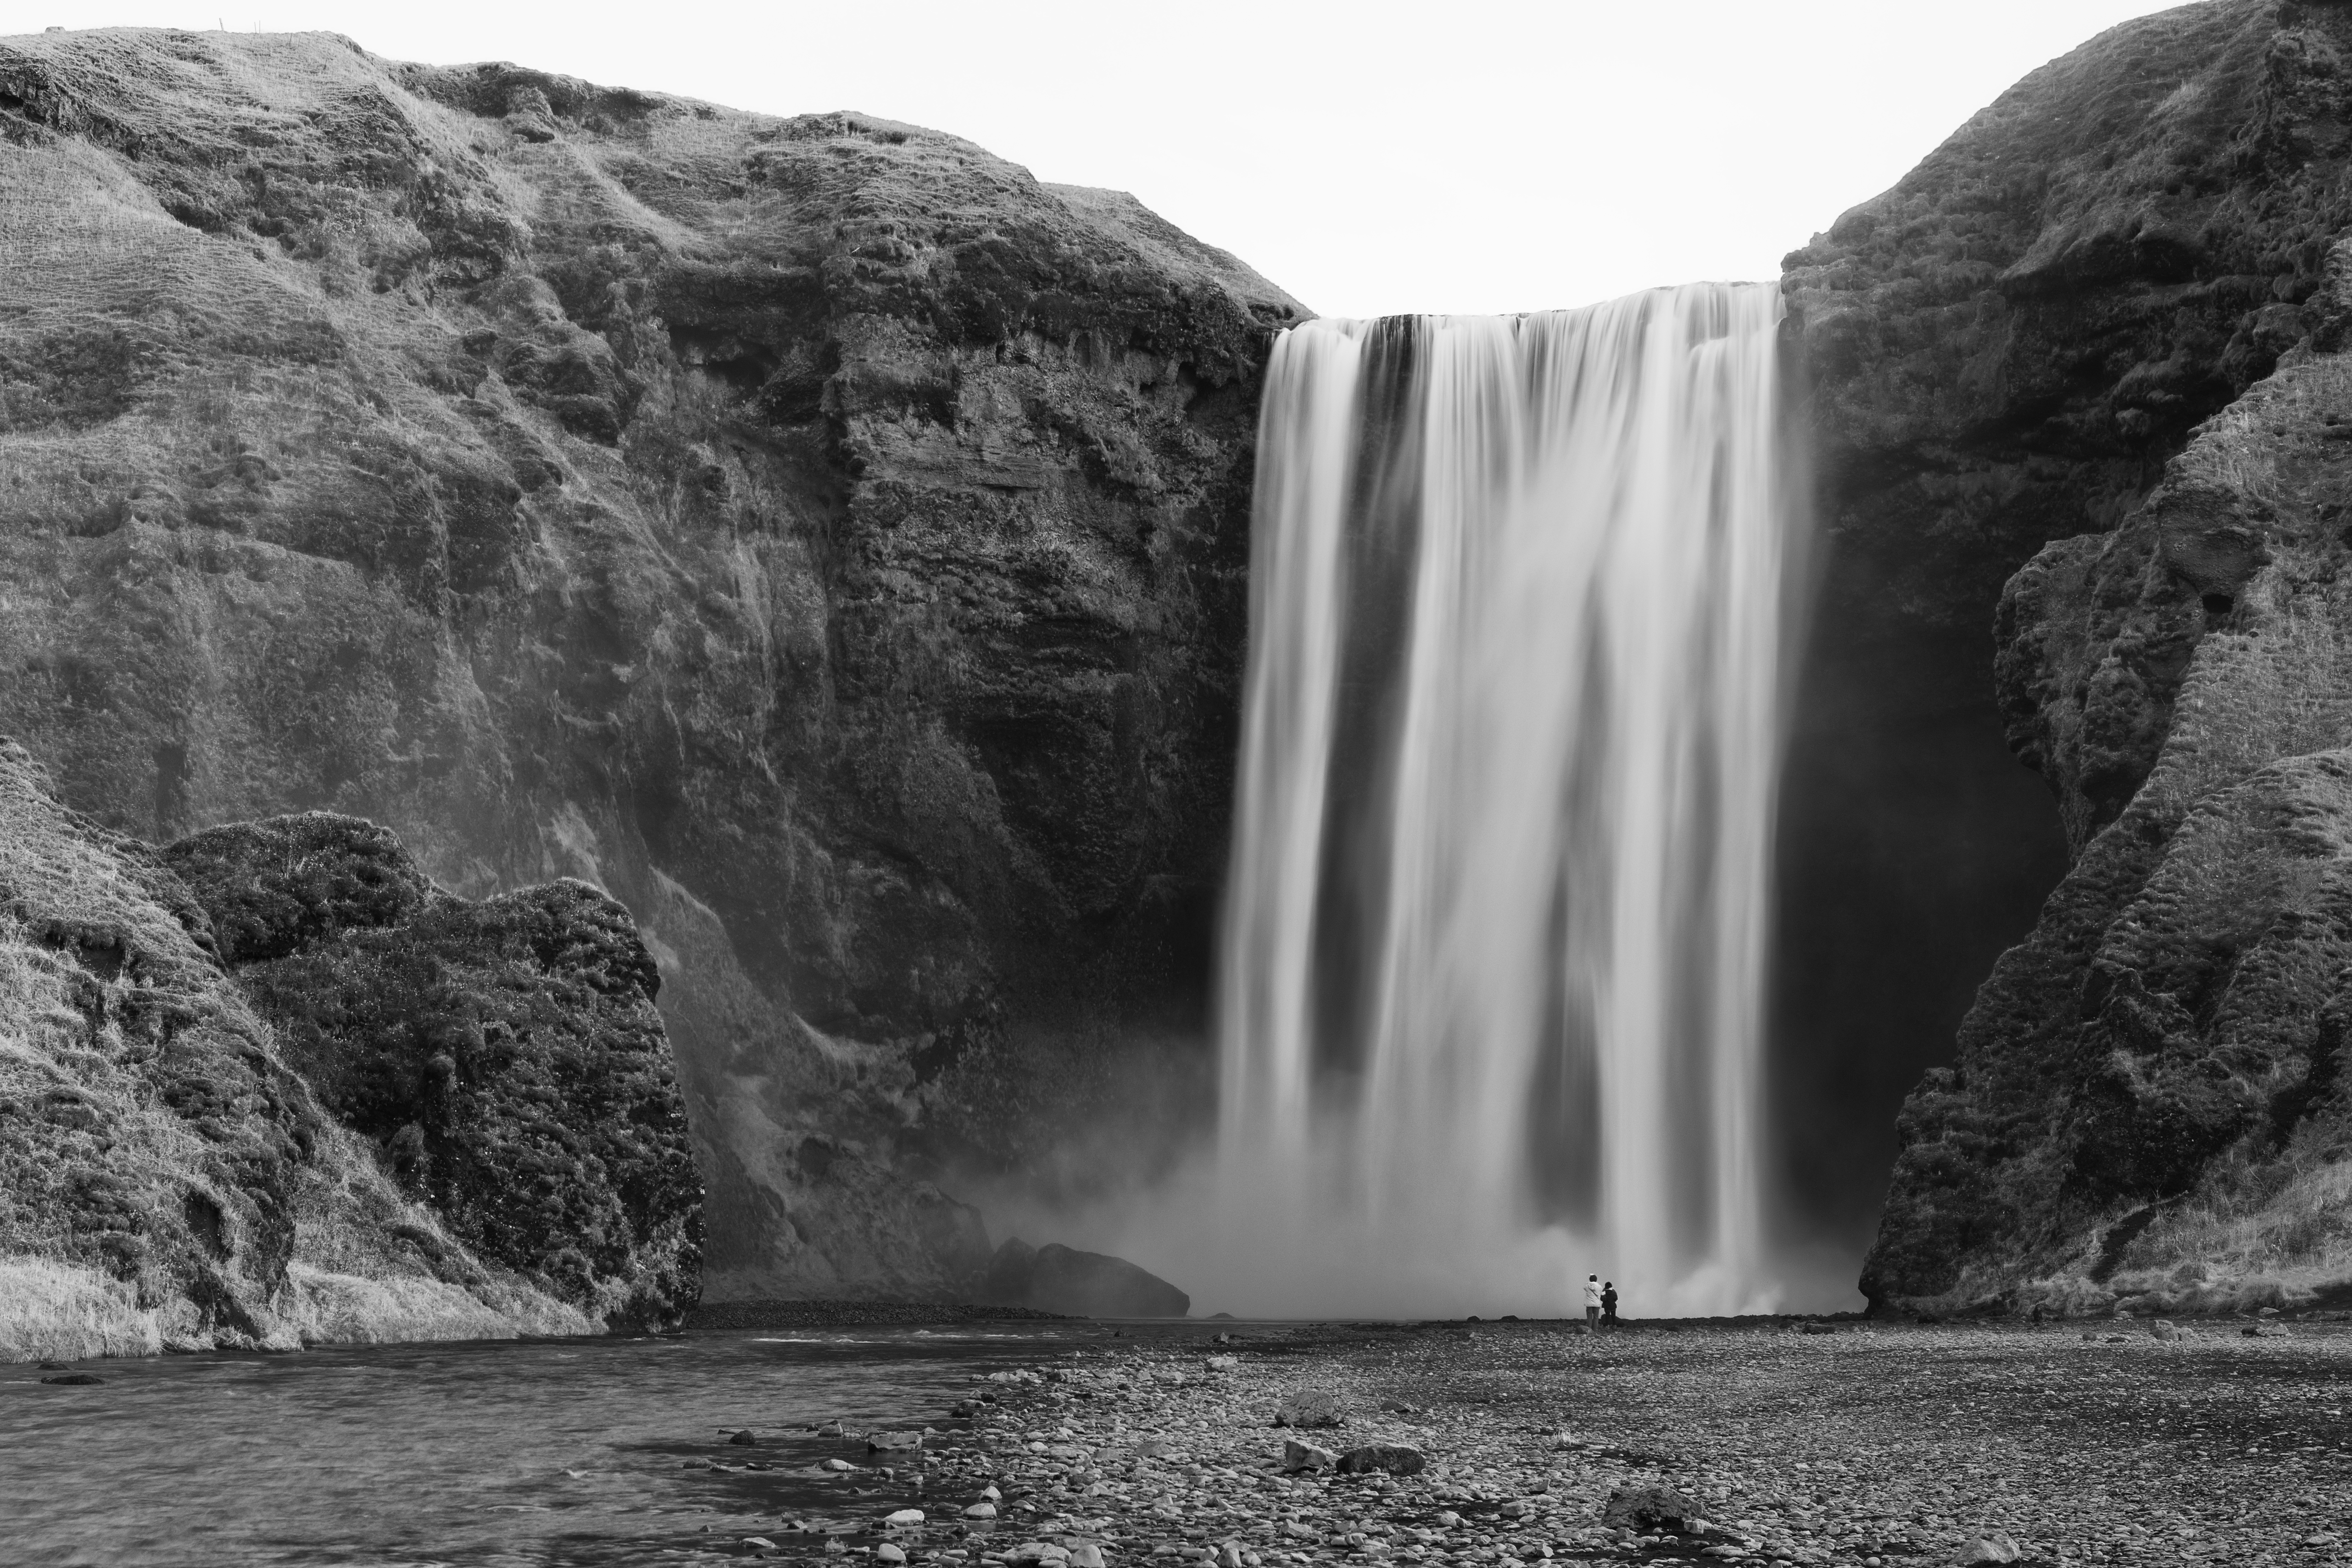 The Skógafoss is one of the biggest waterfalls in Iceland with a width of 49 feet and a drop of 200 feet.